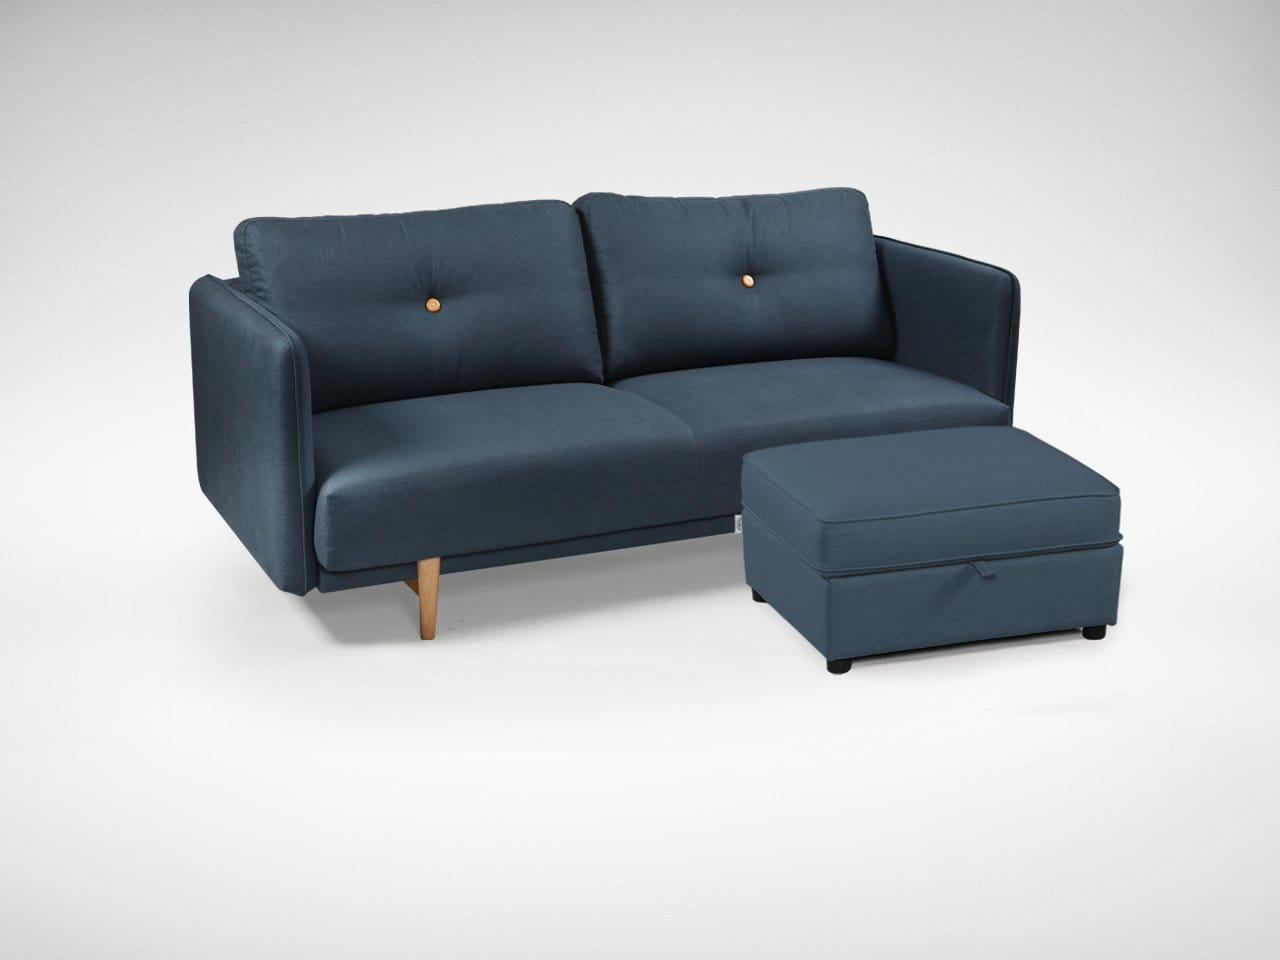 dark blue sofa table designs for drawing room in india bruffon 3seater comfort design the